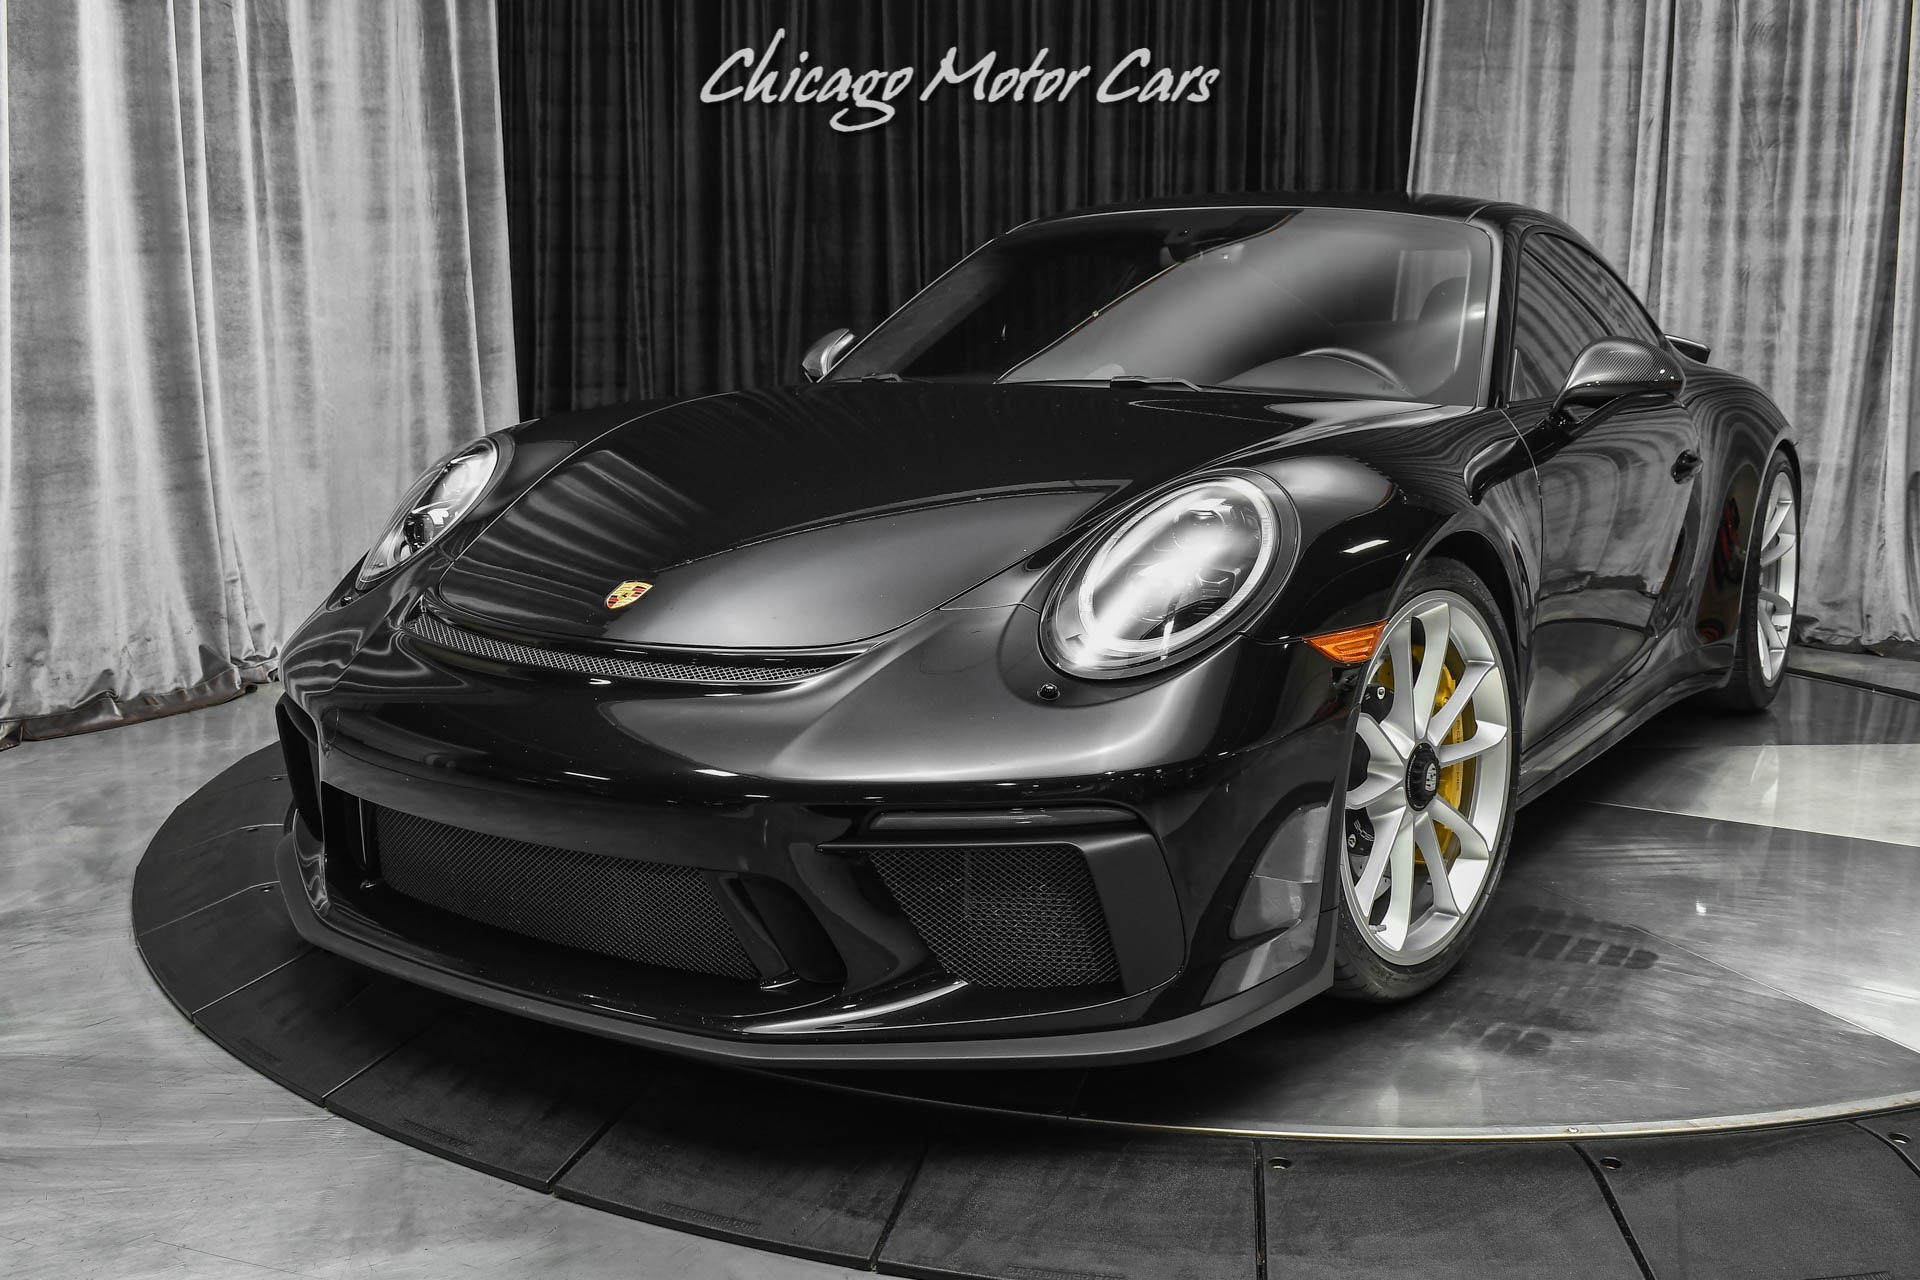 Used-2018-Porsche-911-GT3-Touring-Coupe-PCCB-6-Speed-Manual-Transmission-18-Way-Sport-Seats